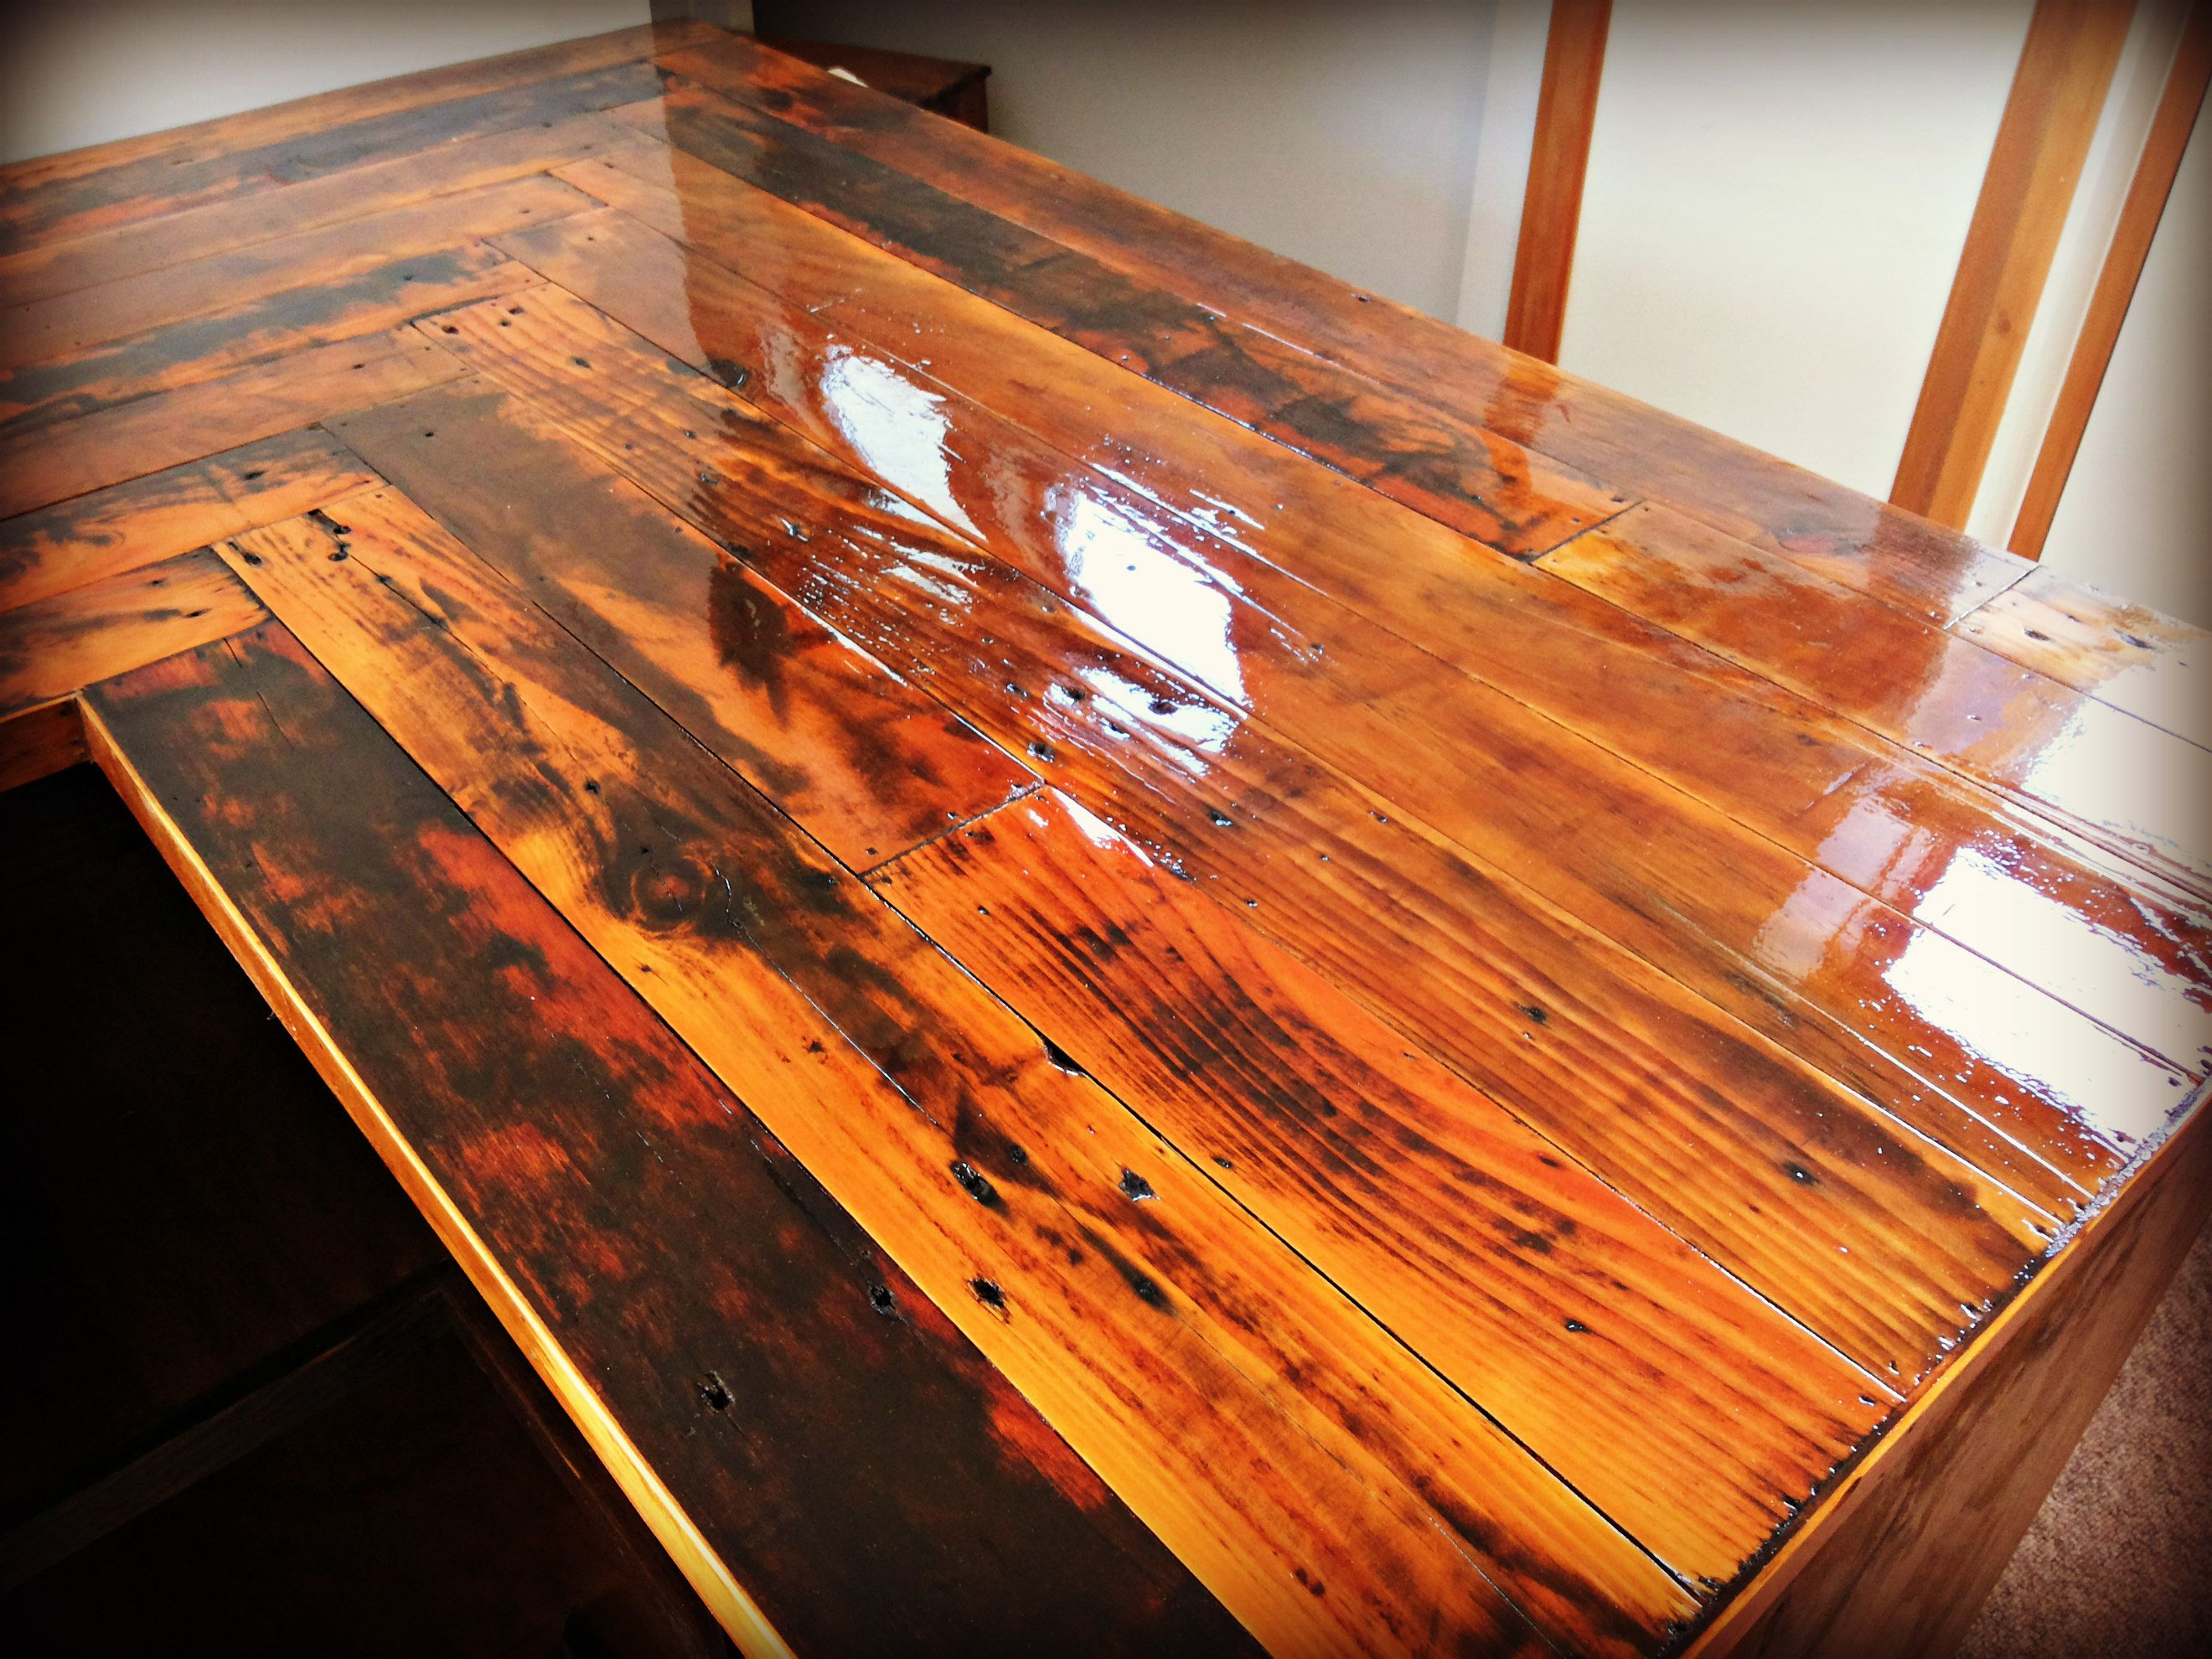 Kitchen Countertop Made With Reclaimed Pallet Wood